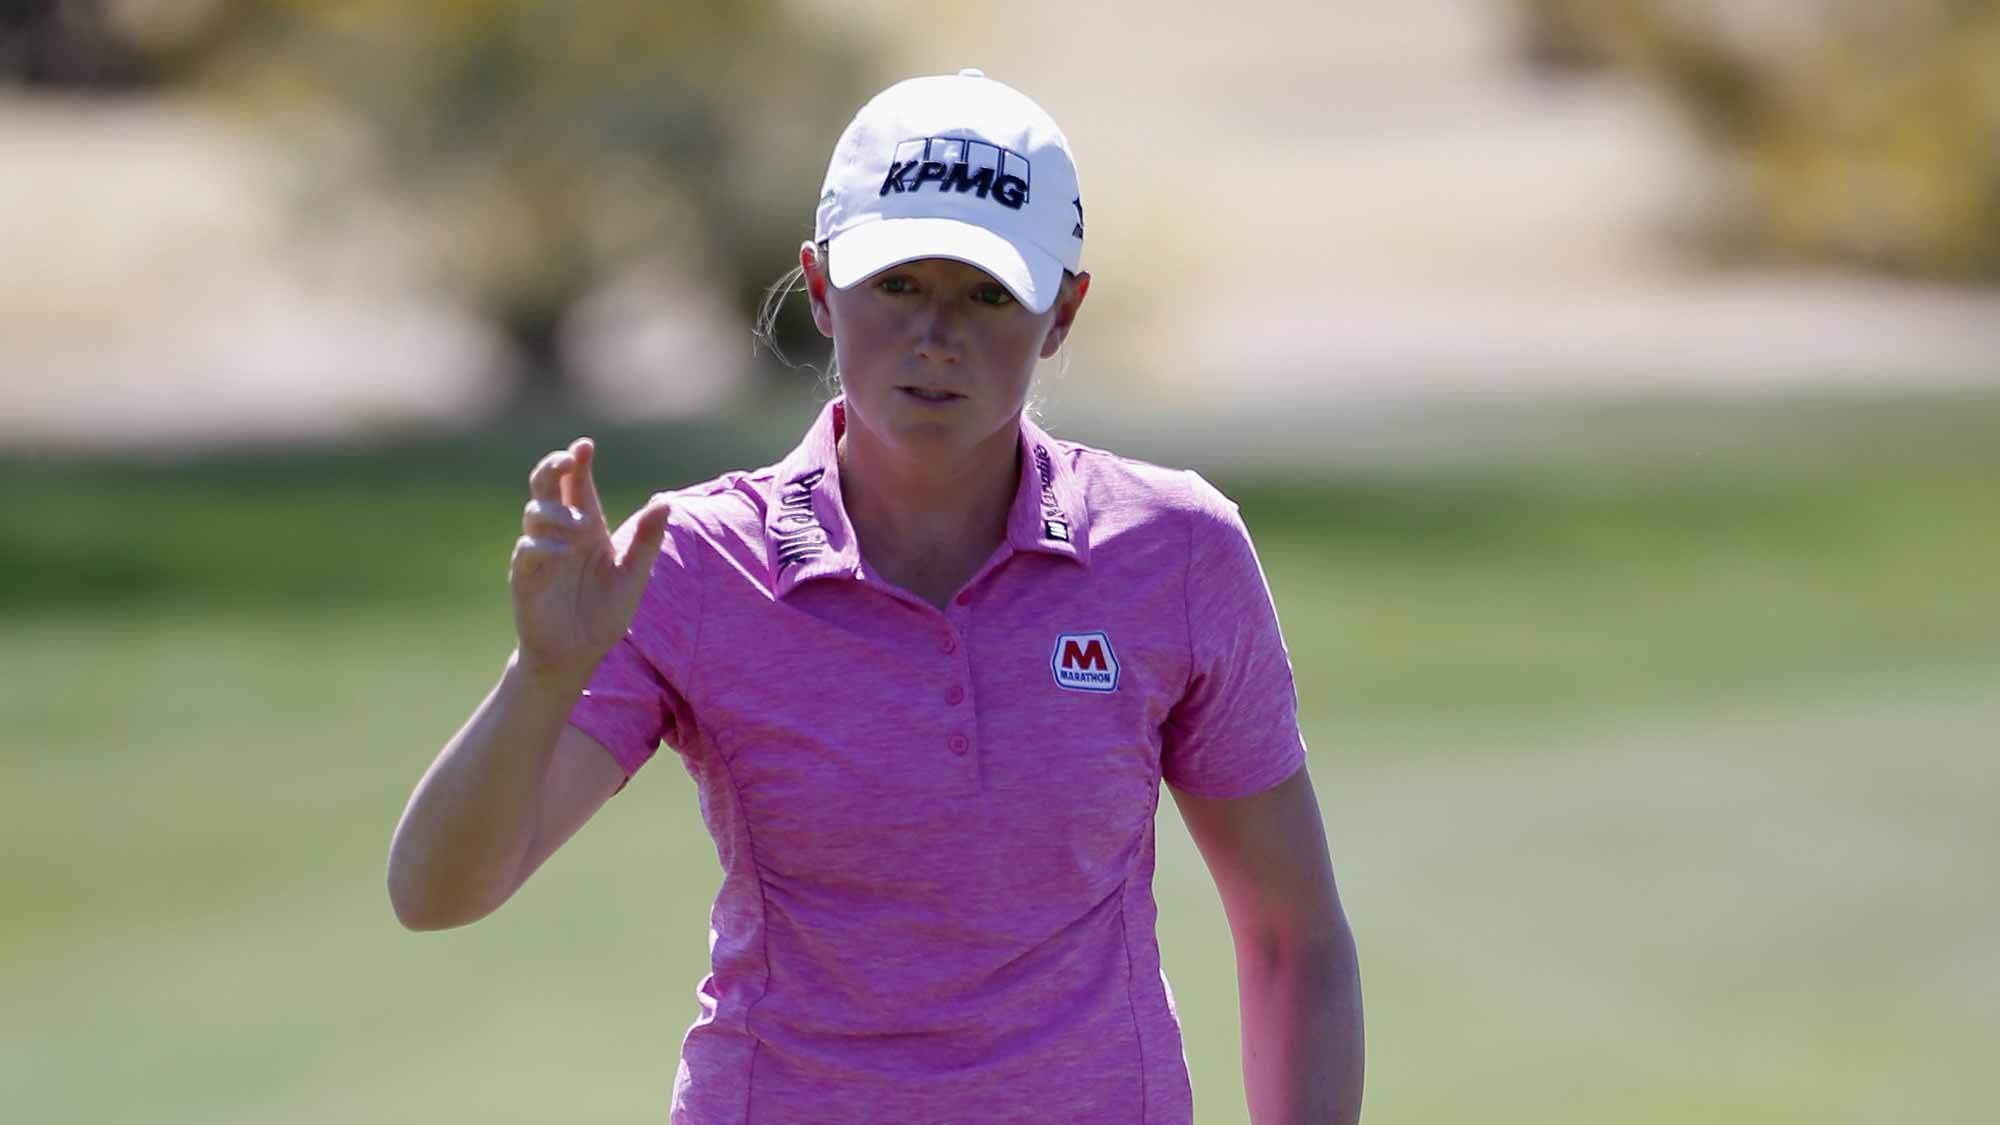 Stacy Lewis reacts after a putt on the first green during the second round of the LPGA JTBC Founders Cup at Wildfire Golf Club